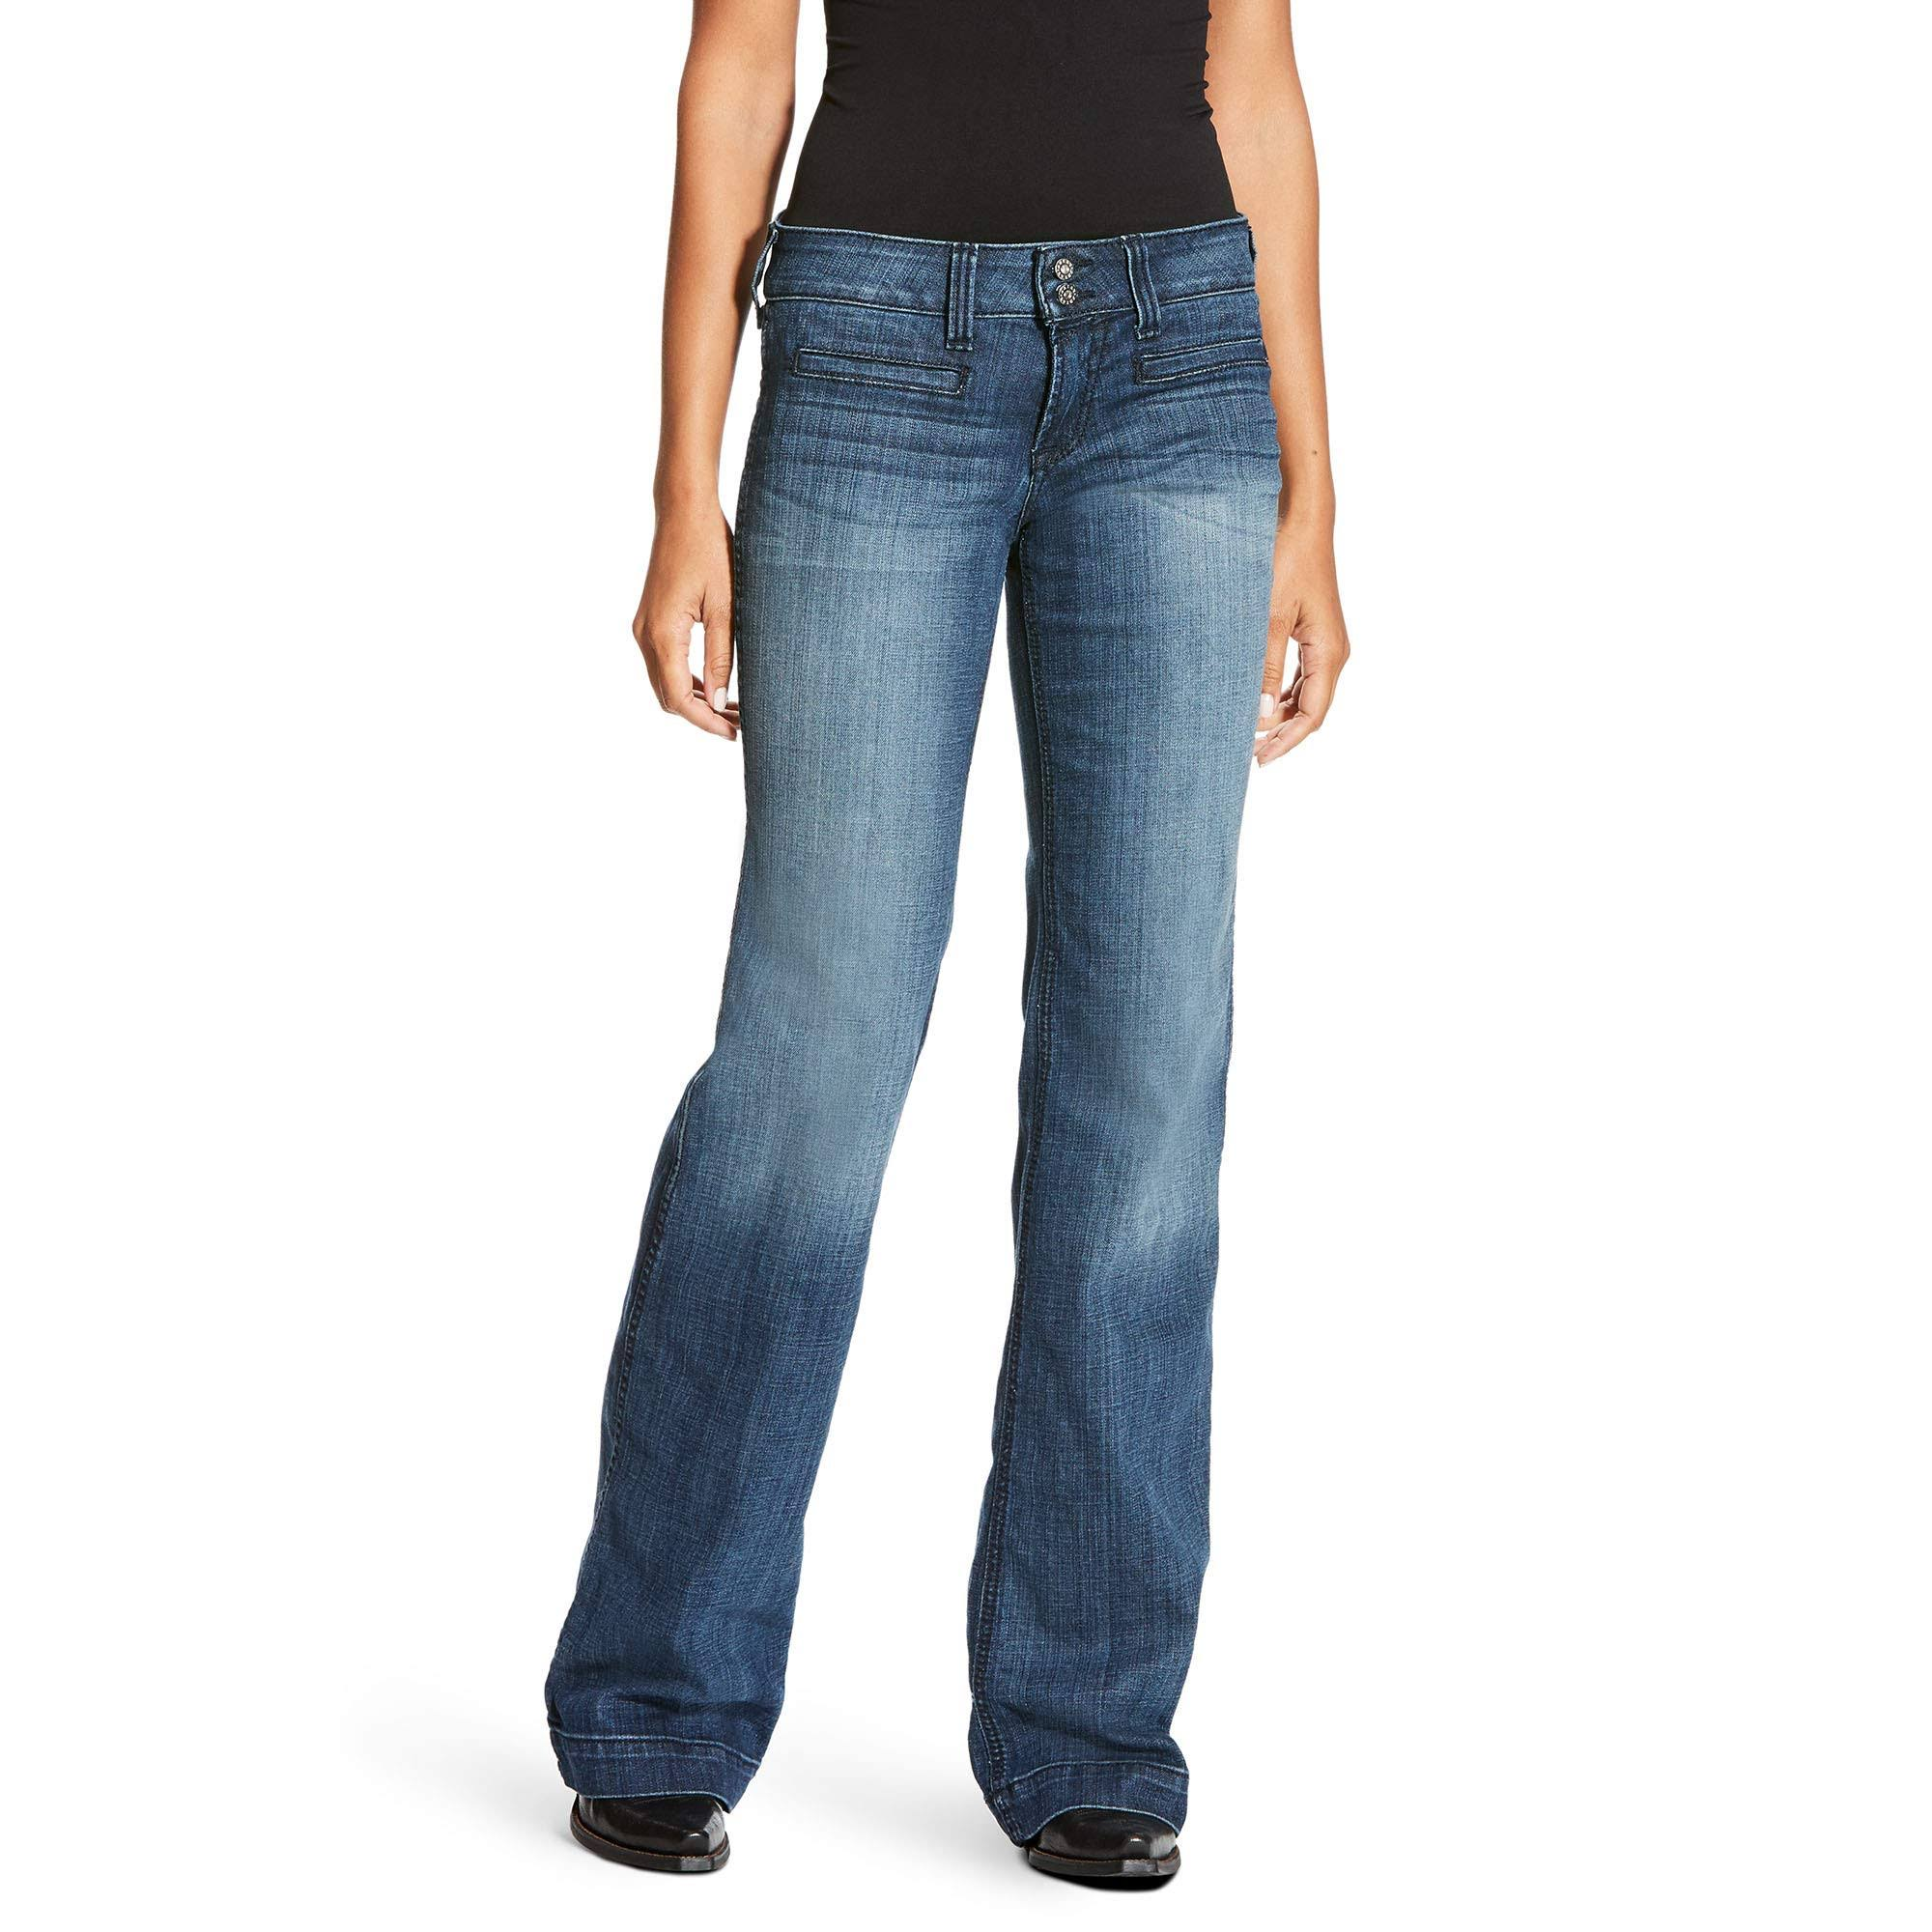 Ariat Trouser Mid Rise Ella Jeans - Bluebell, Size 29